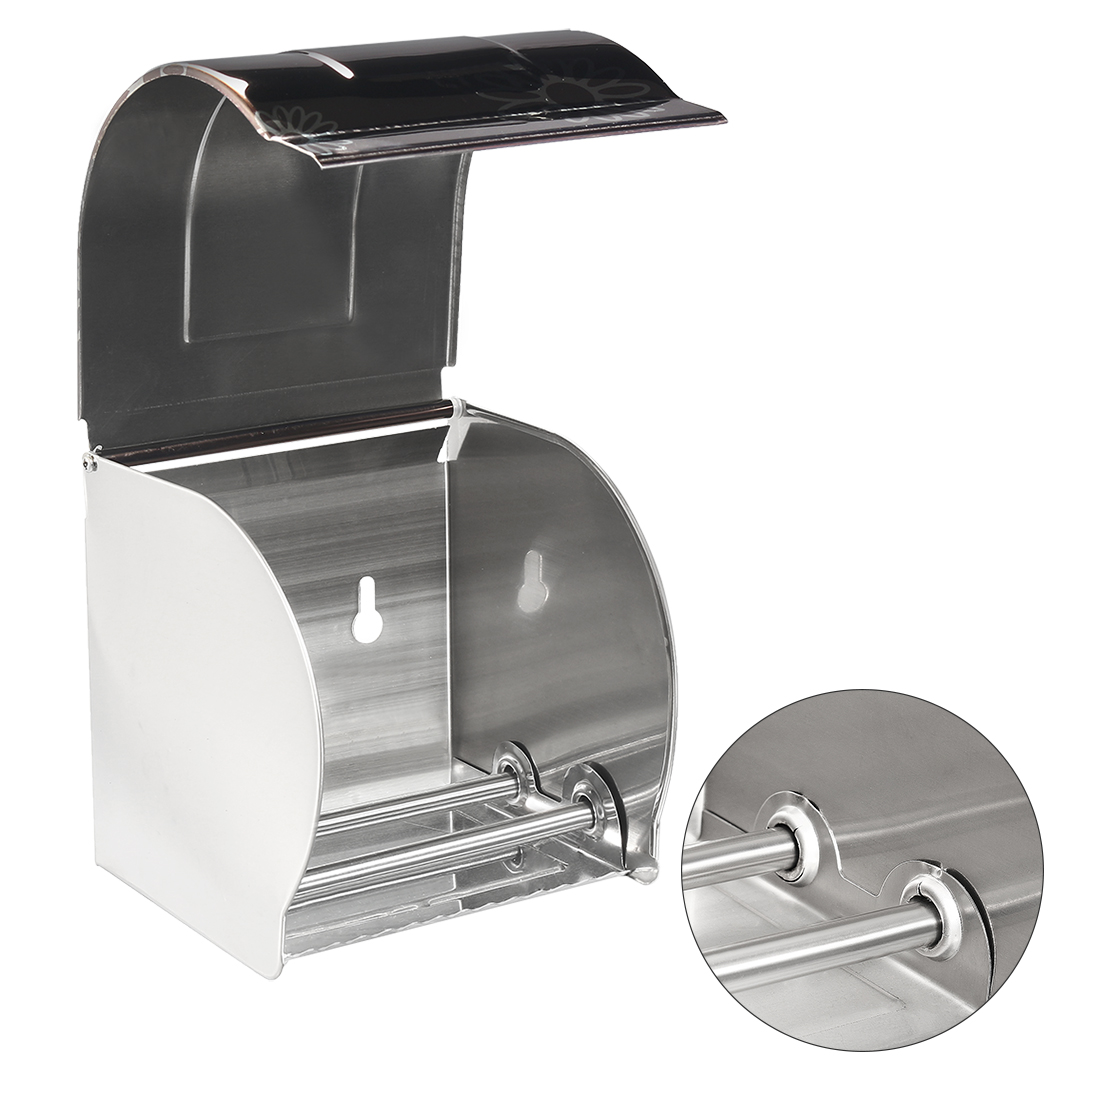 Unique Bargains 120mmx122mmx123mm 304 Stainless Steel Wall-Mounted Toilet Paper Holder w Cover - image 3 of 7